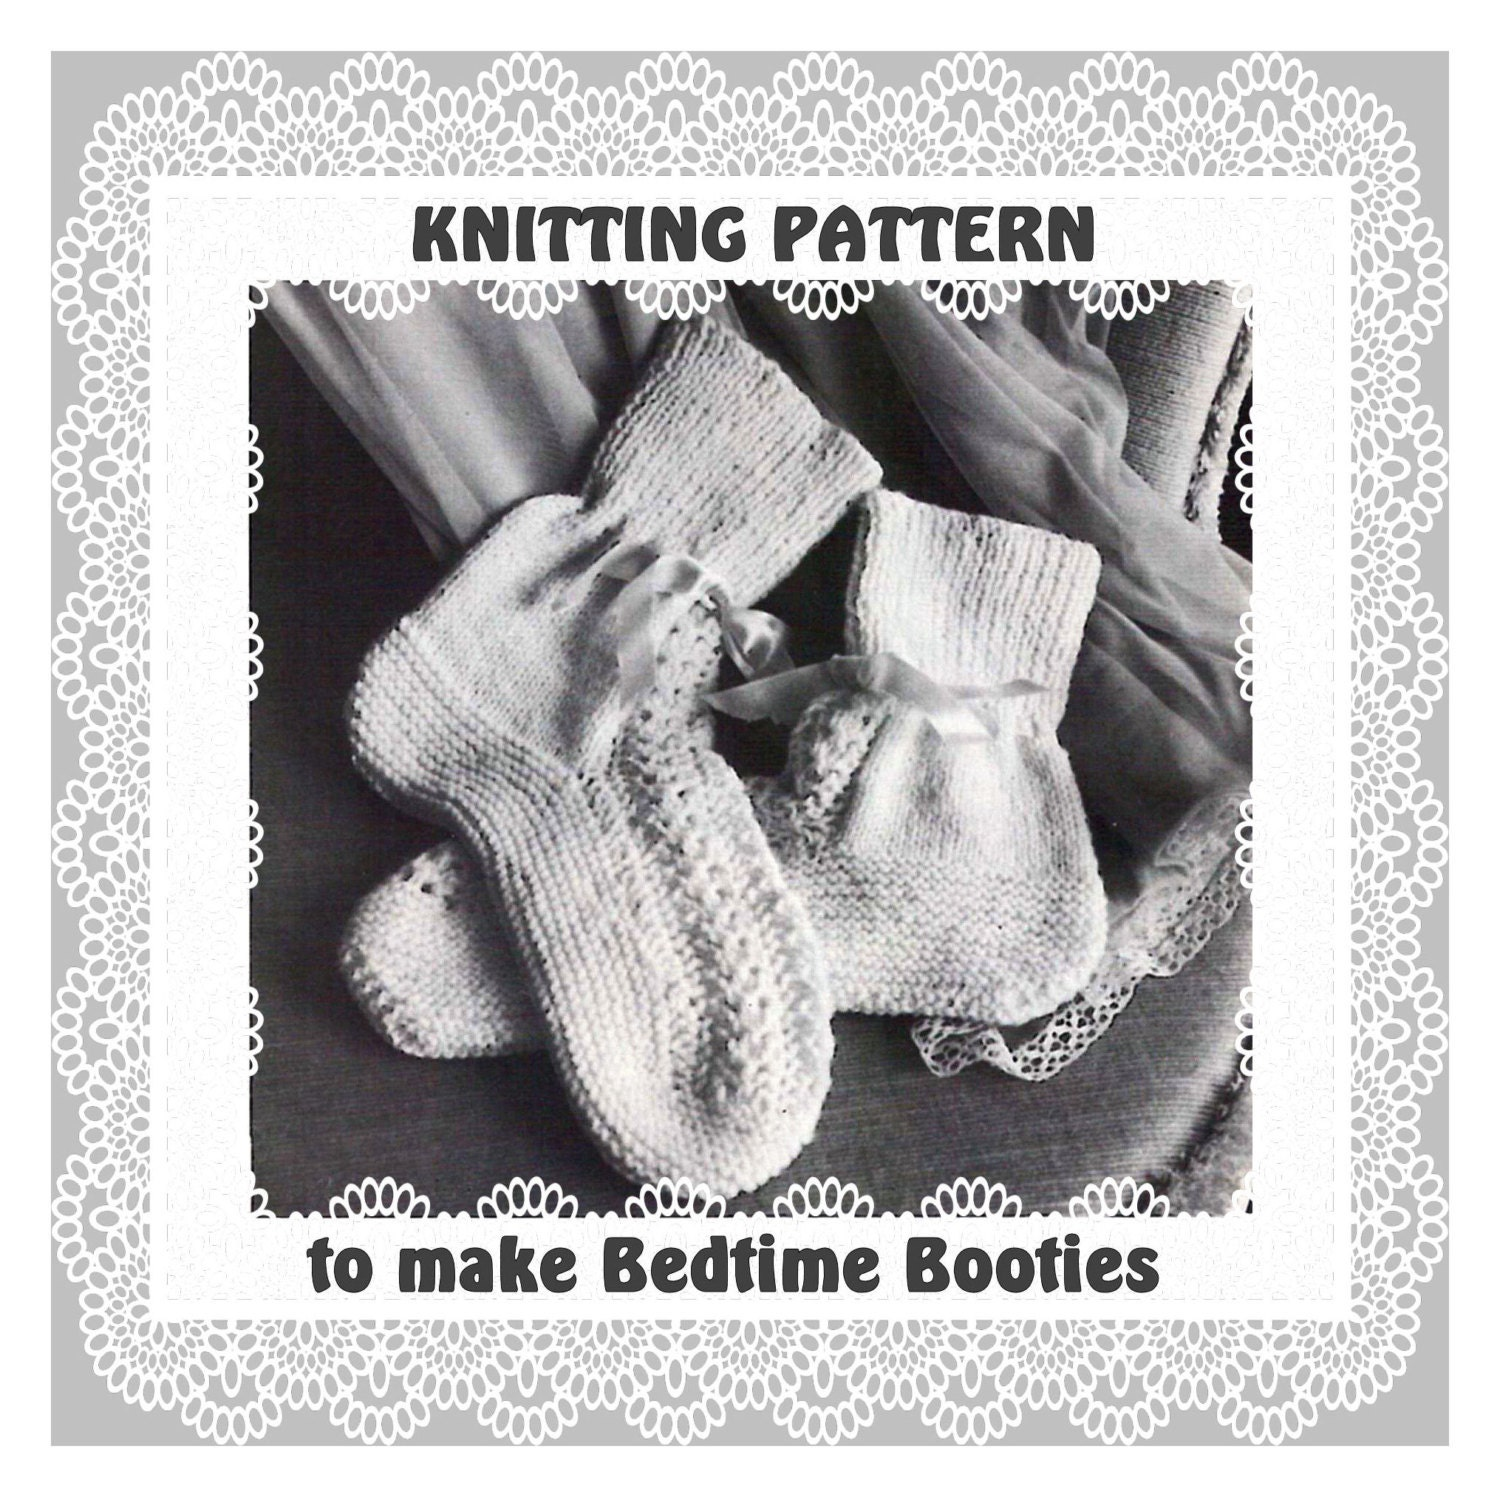 Bed Socks Knitting Pattern 2 Needles : Instant Download PDF Vintage Seventies Knitting by YesterdaysMagic